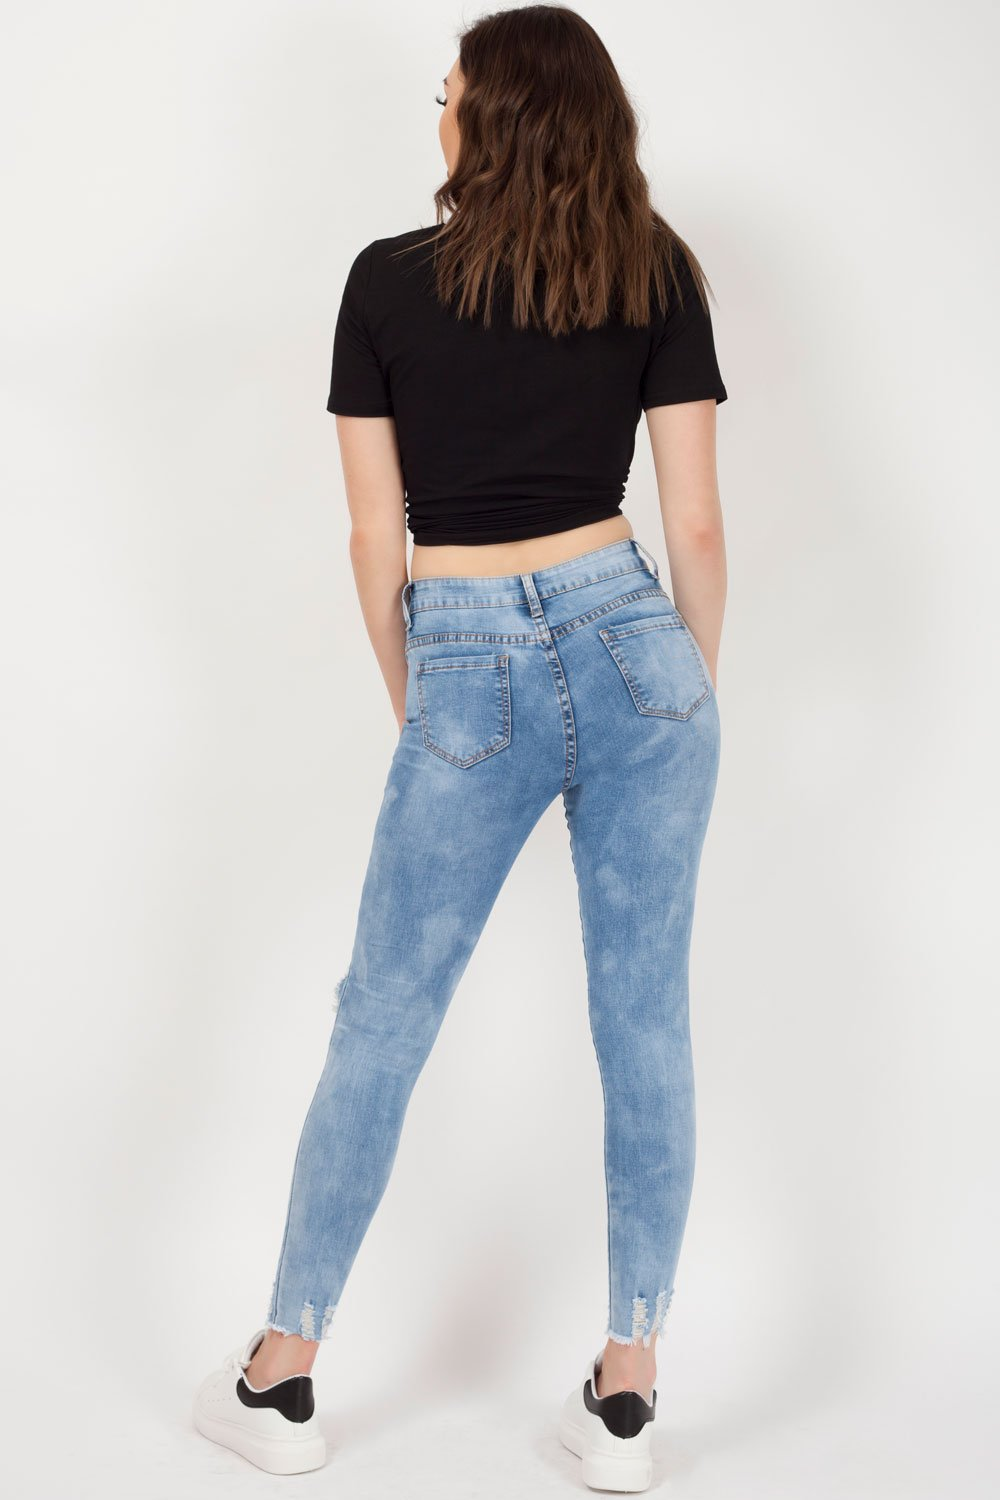 ripped skinny jeans for womens